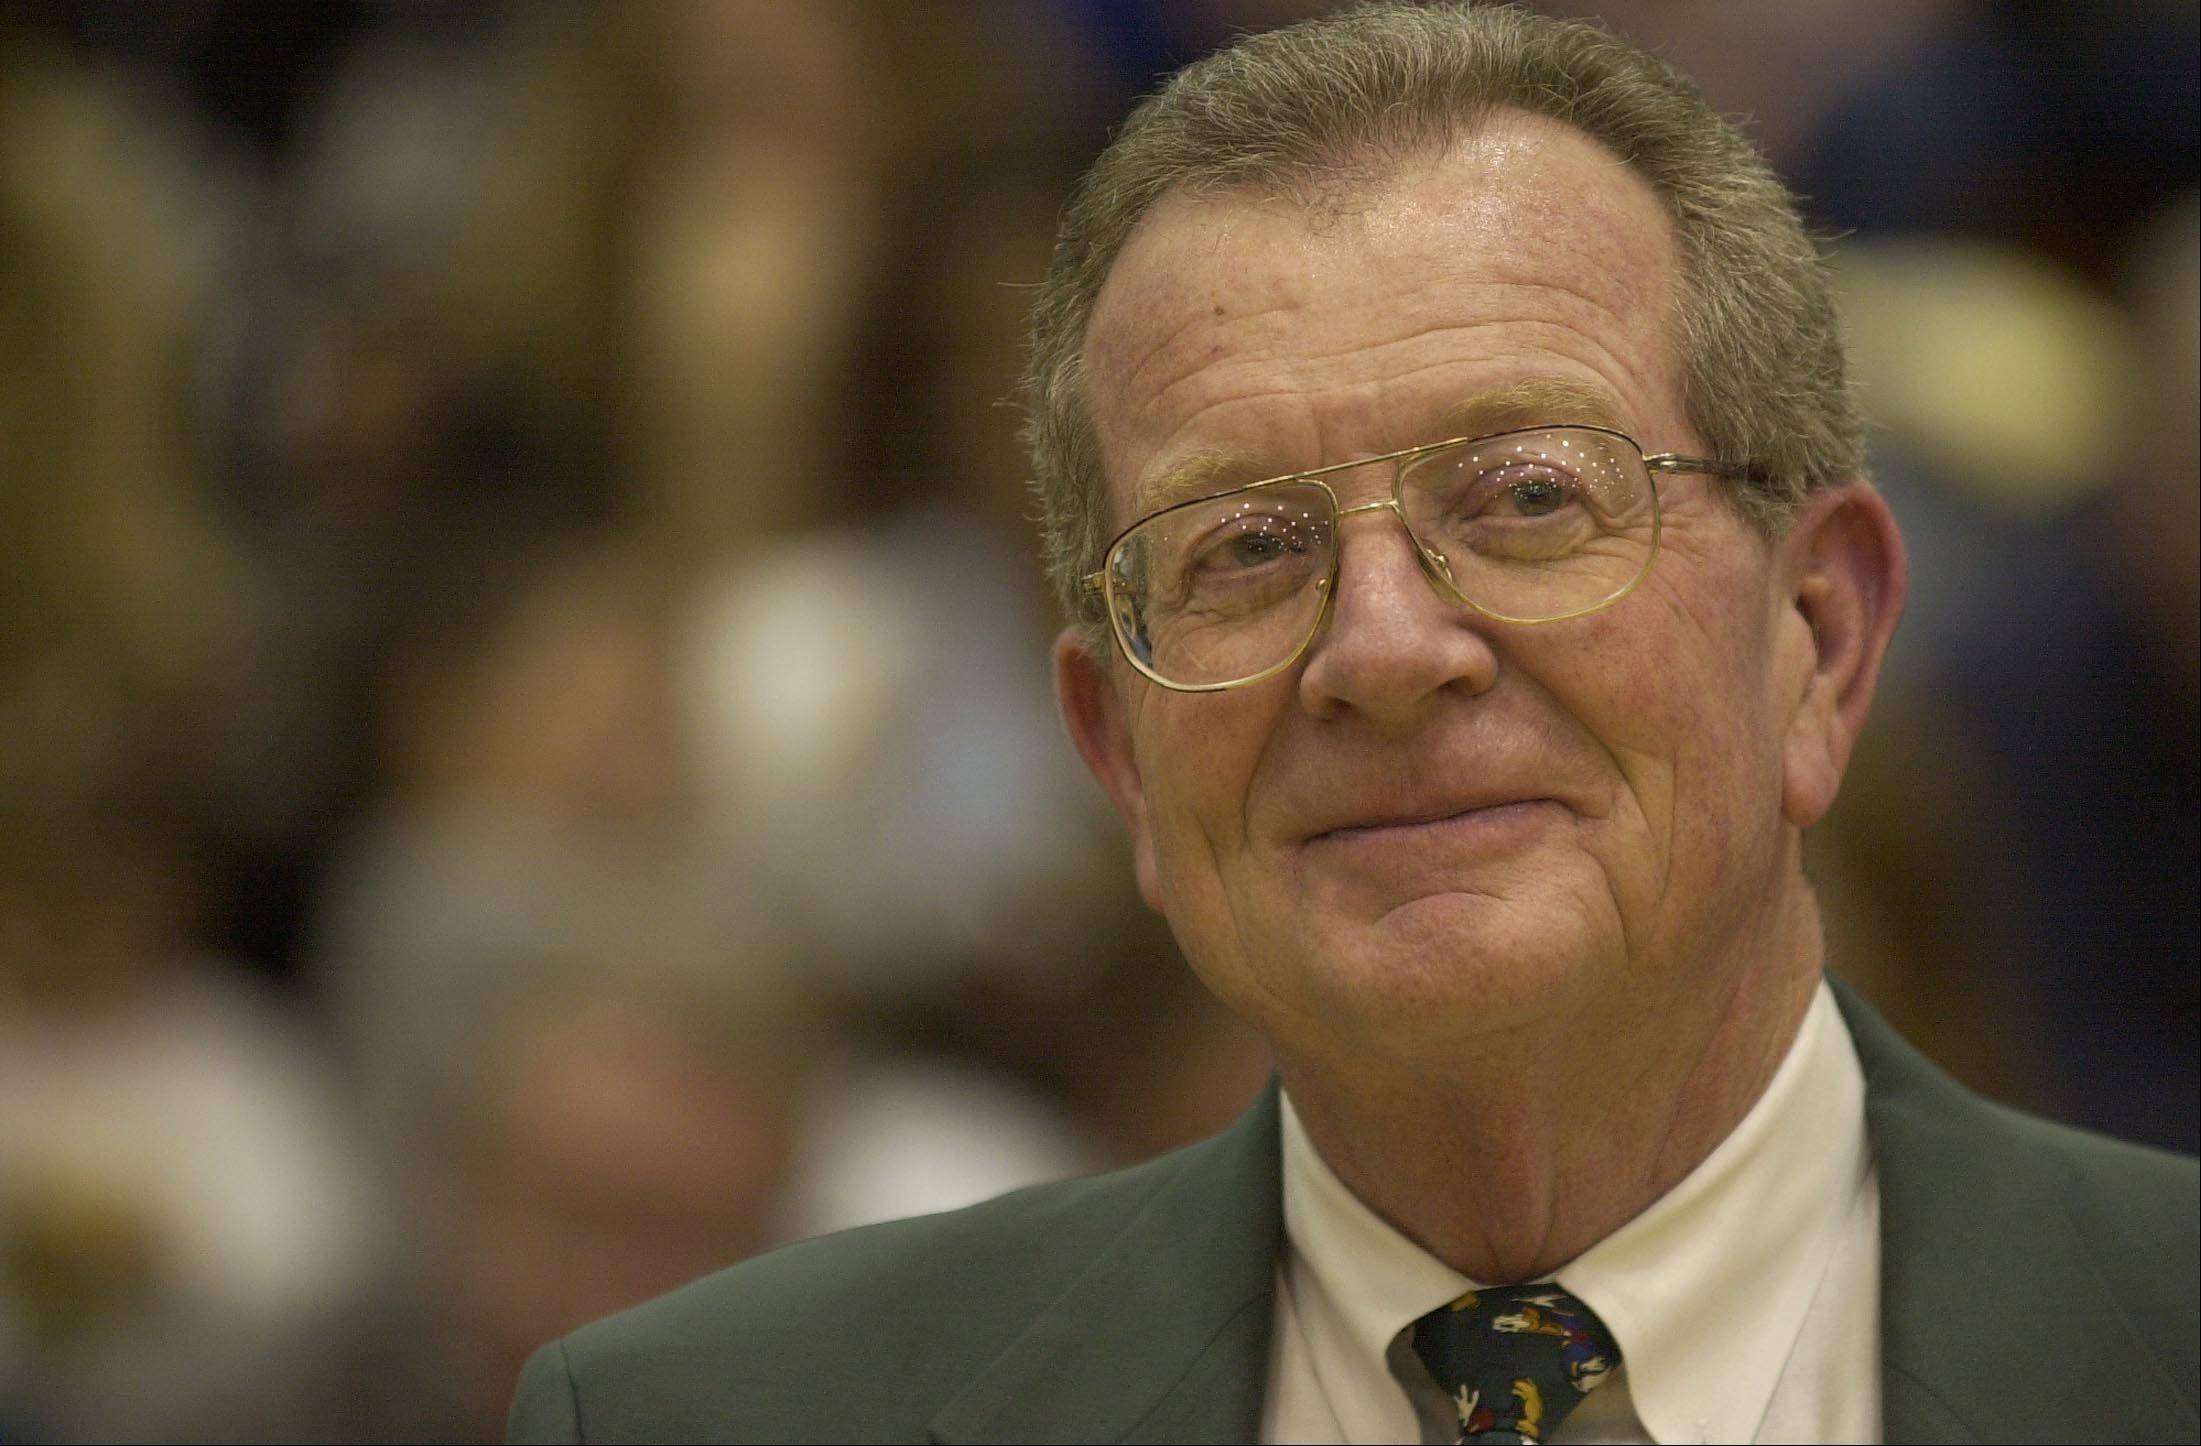 Mo Tharp is among the latest to gain admission into Fremd's Hall of Honor. He coached the Fremd boys basketball team to 472 wins.